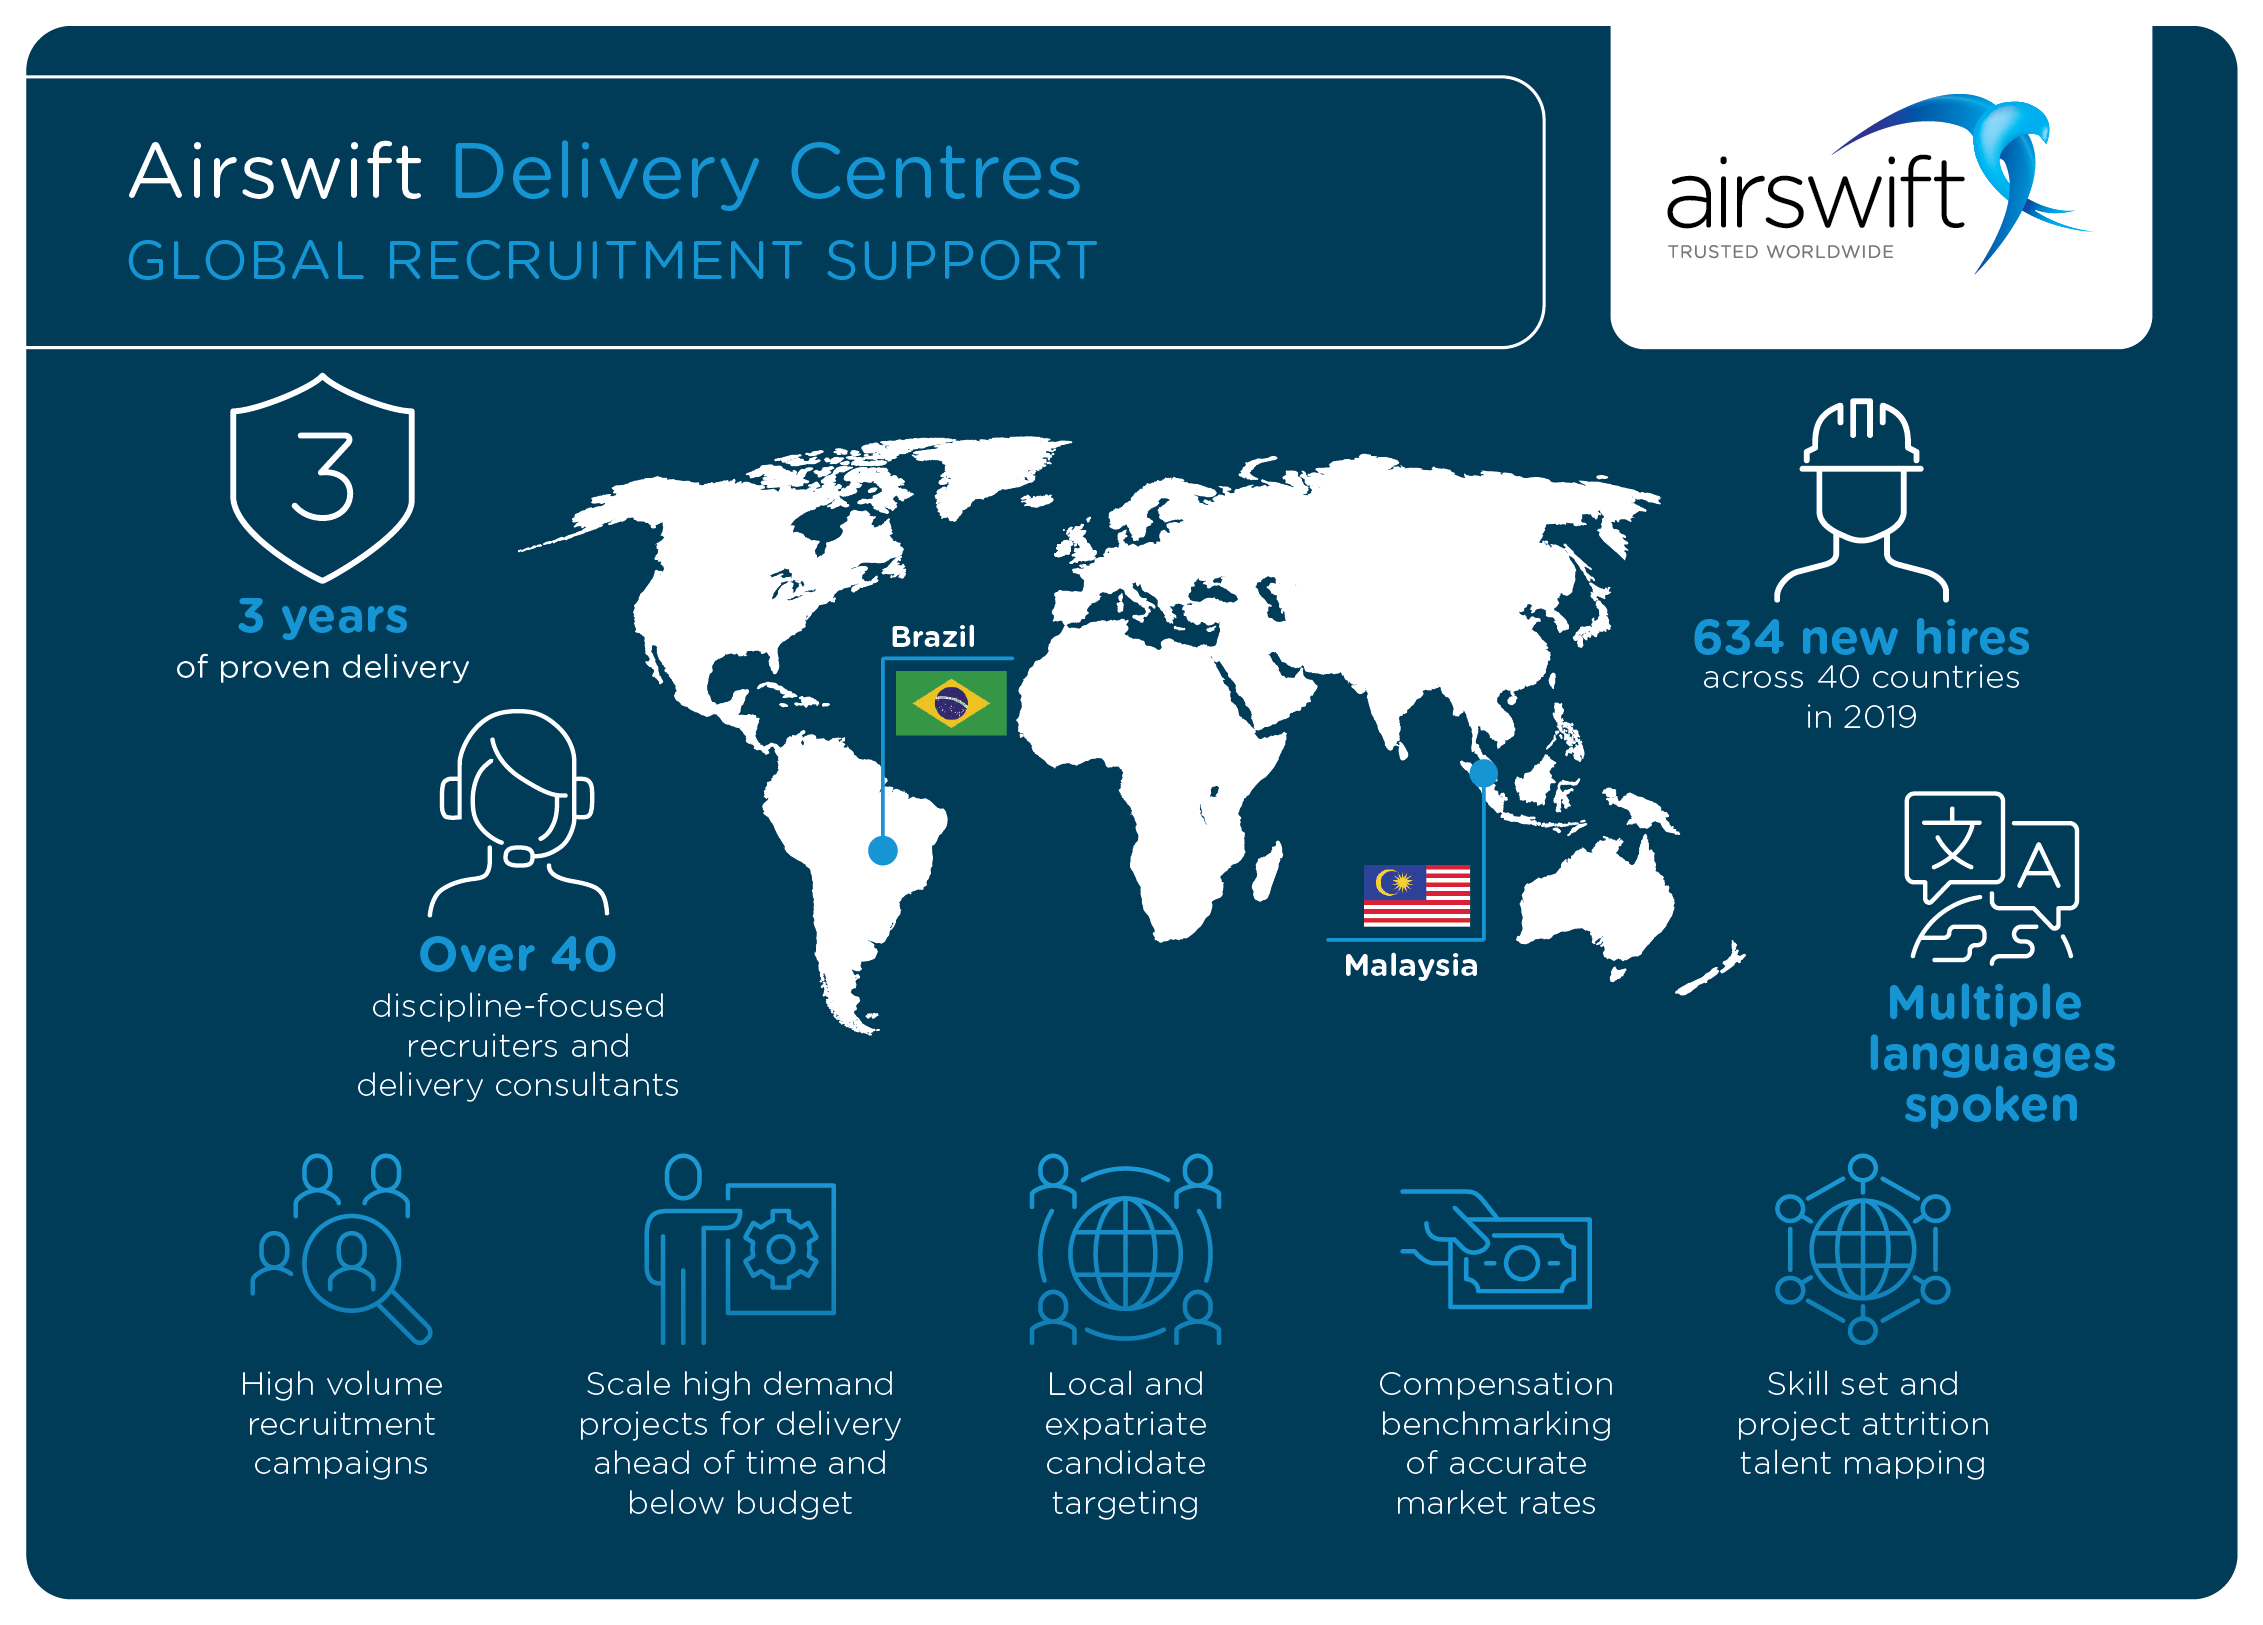 Airswift Delivery Centres in Brazil and Malaysia